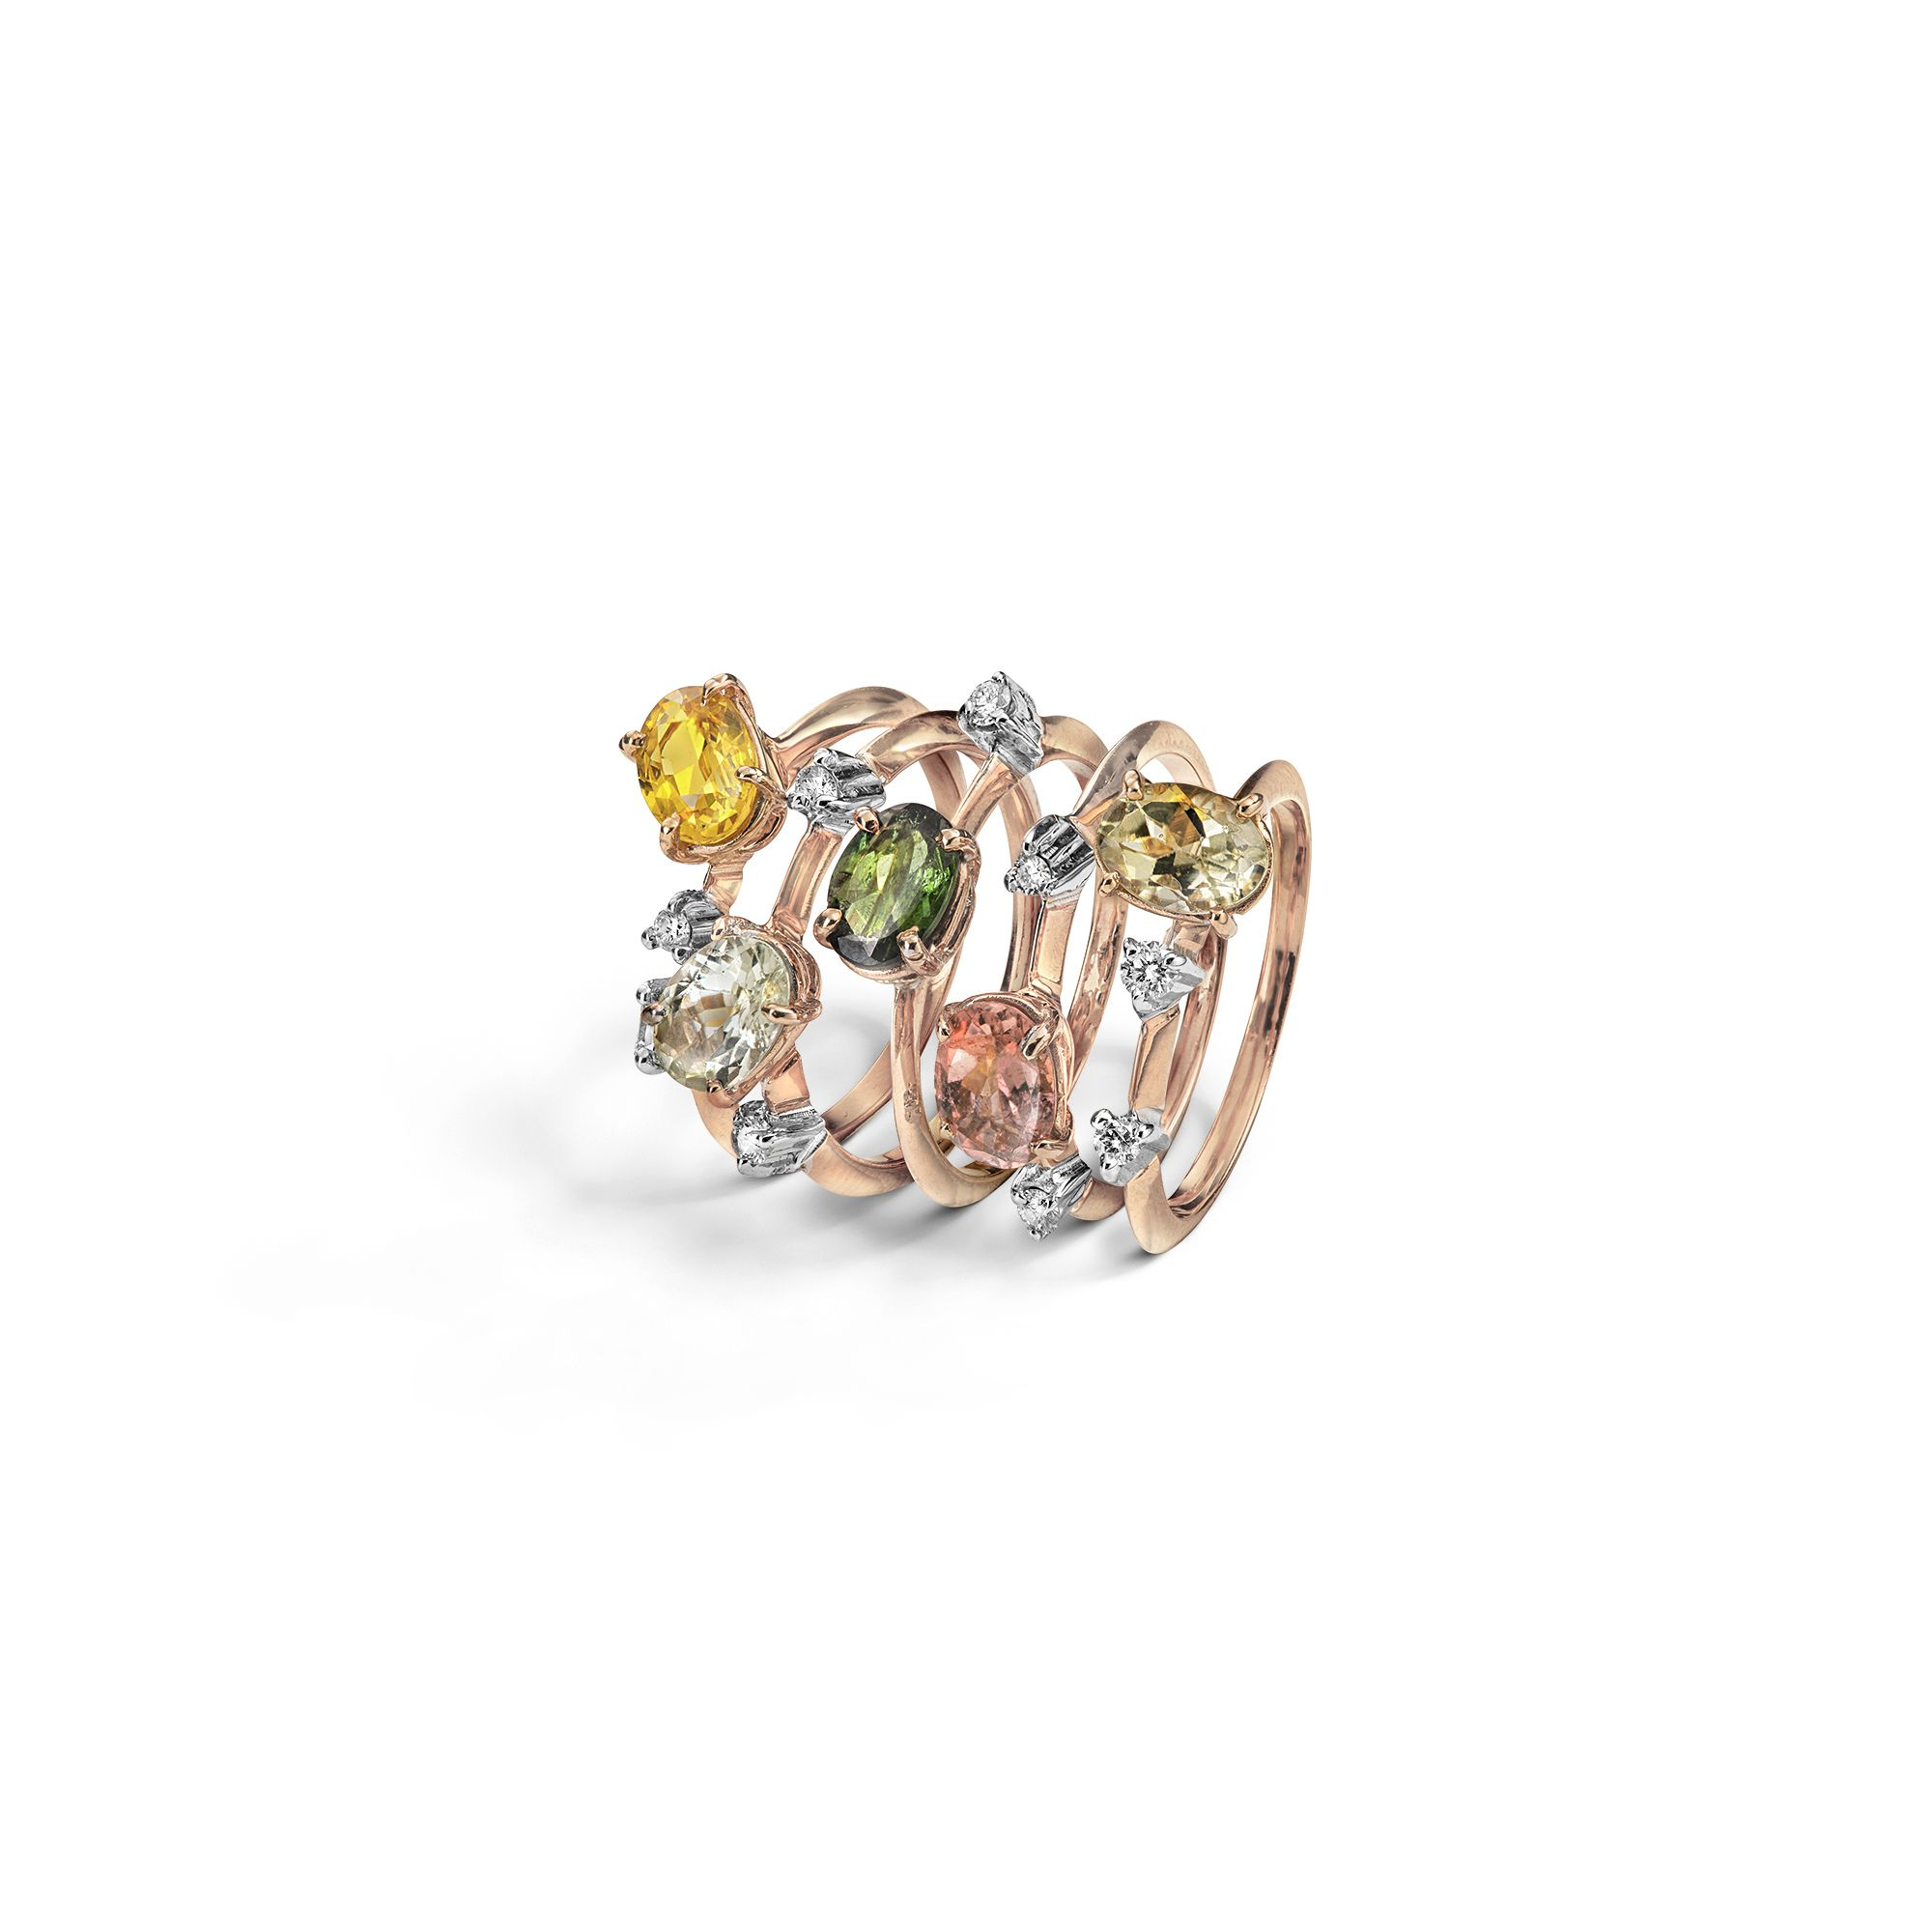 Set of 5 'Balance' rings with tourmalines Rose gold rings with tourmalines and diamonds